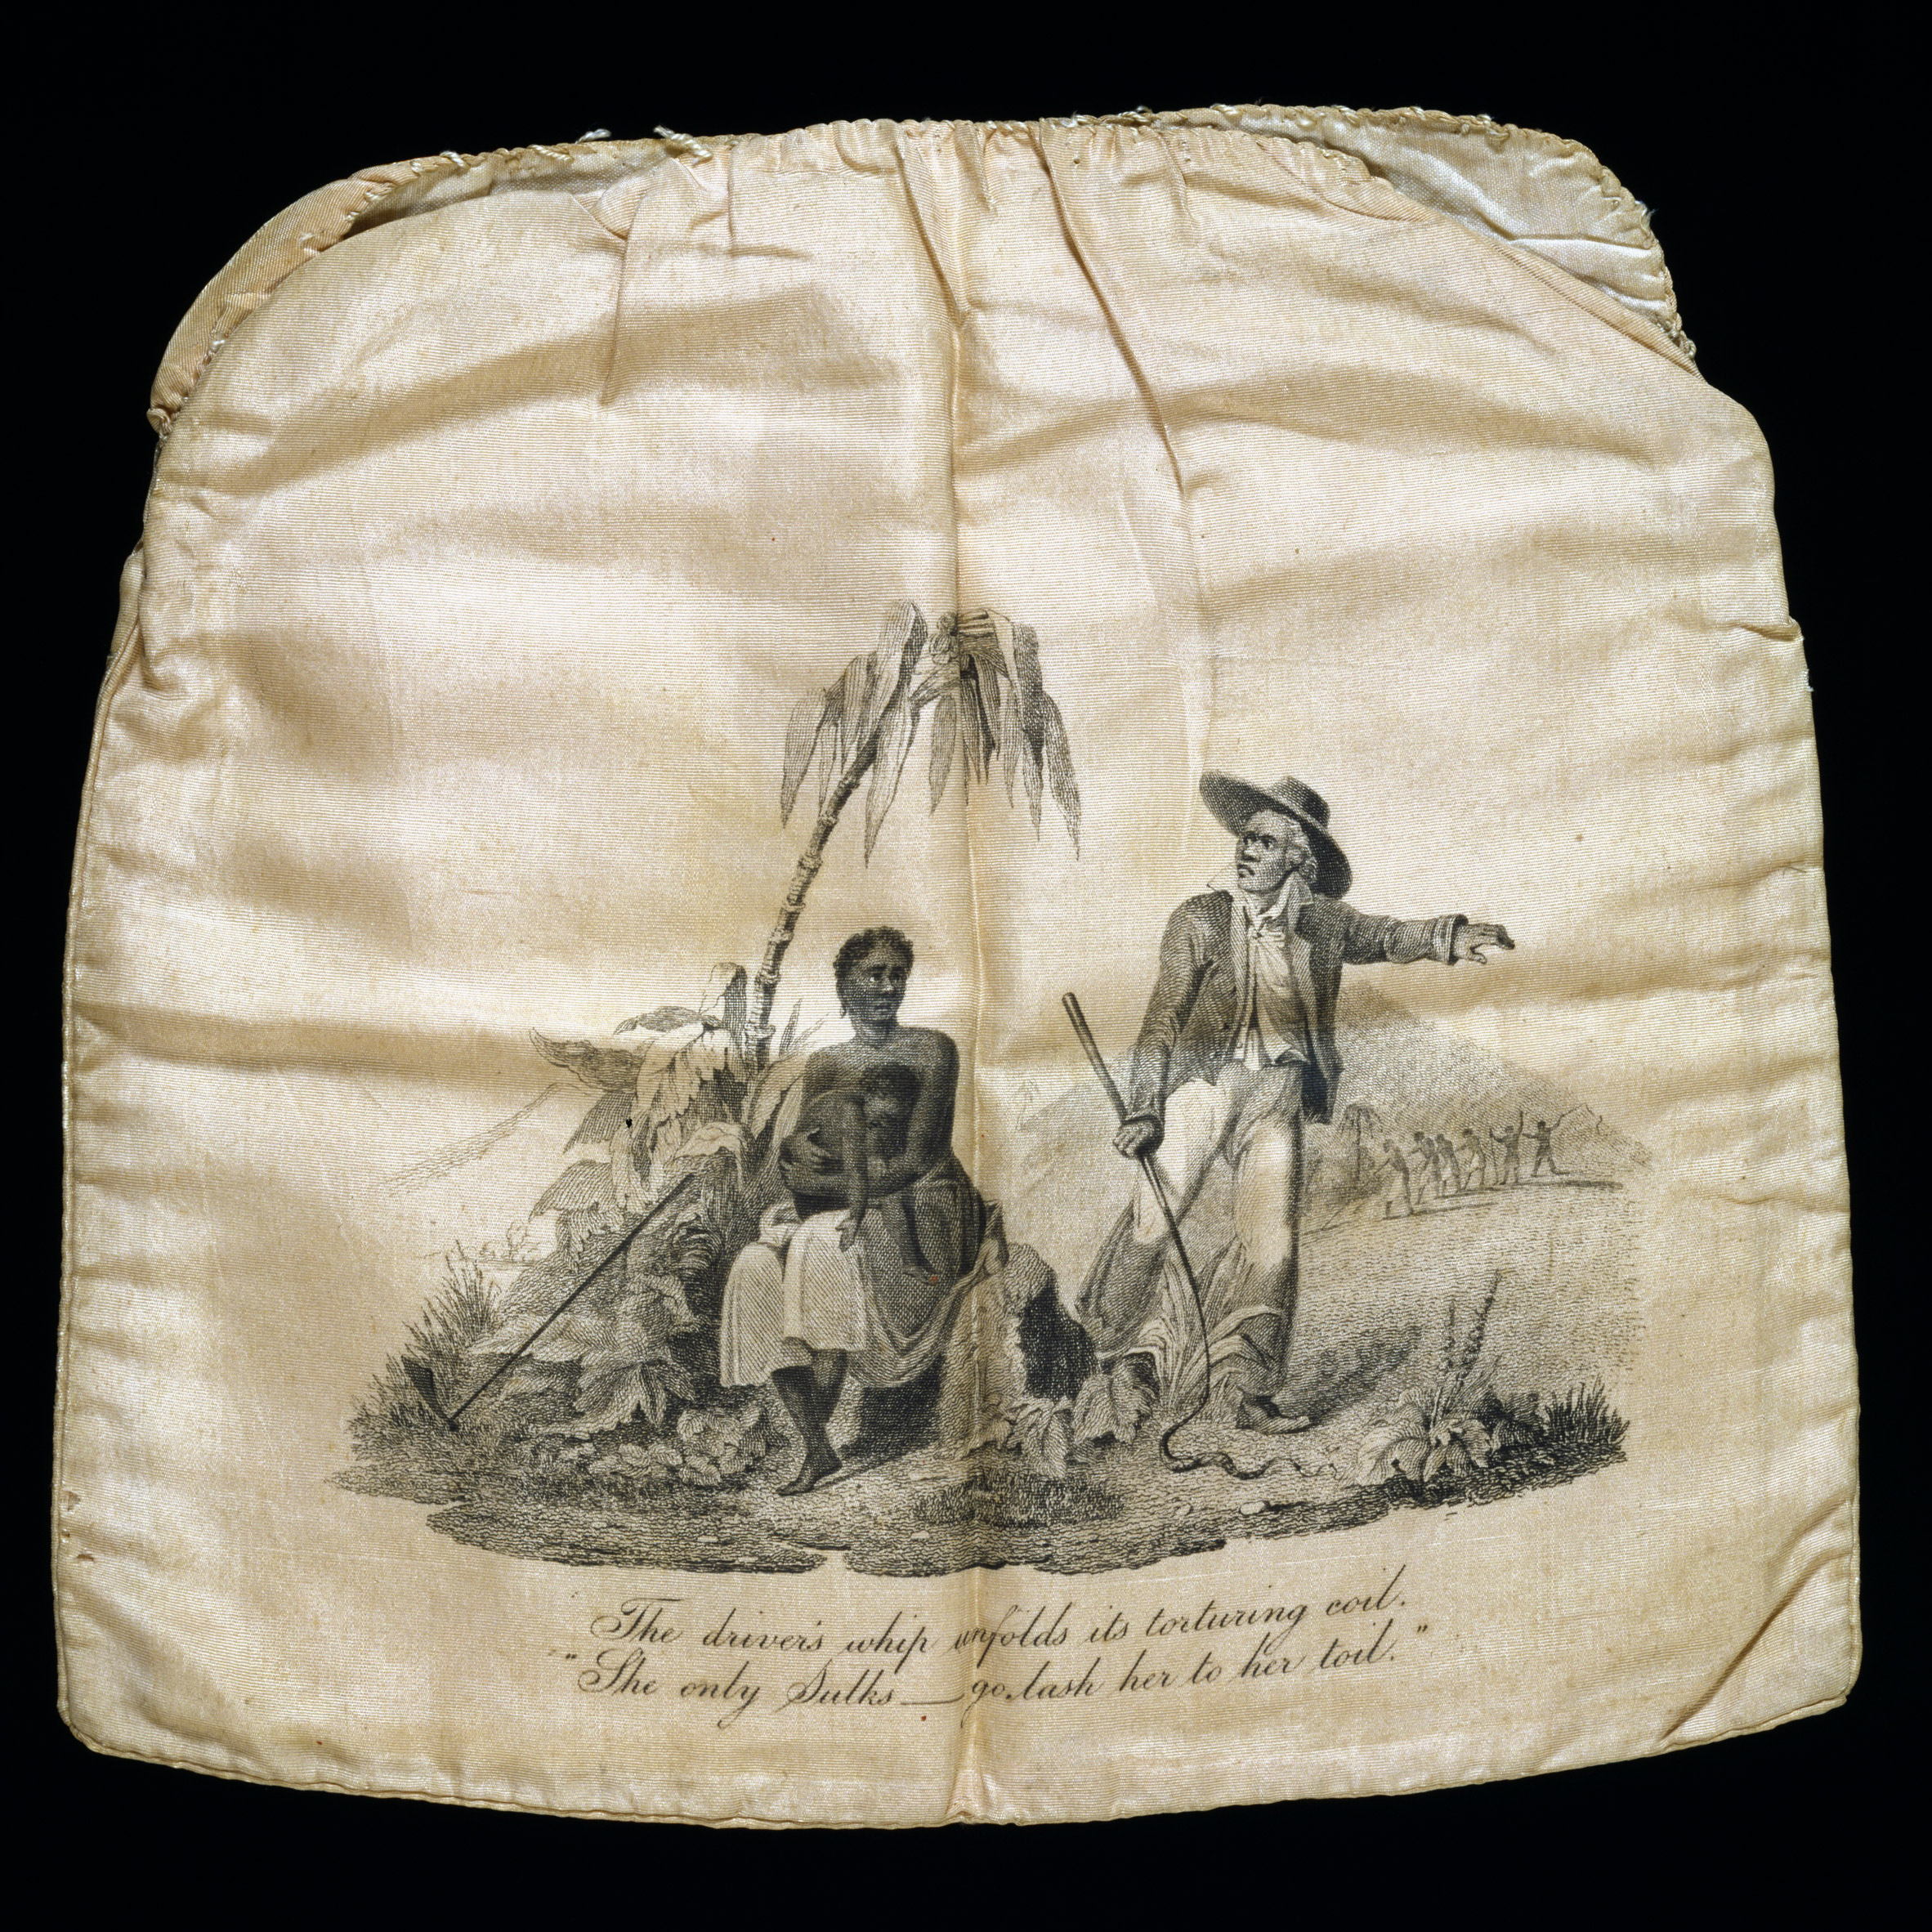 Anti-slavery workbag from the Bags: Inside Out exhibition at the V&A